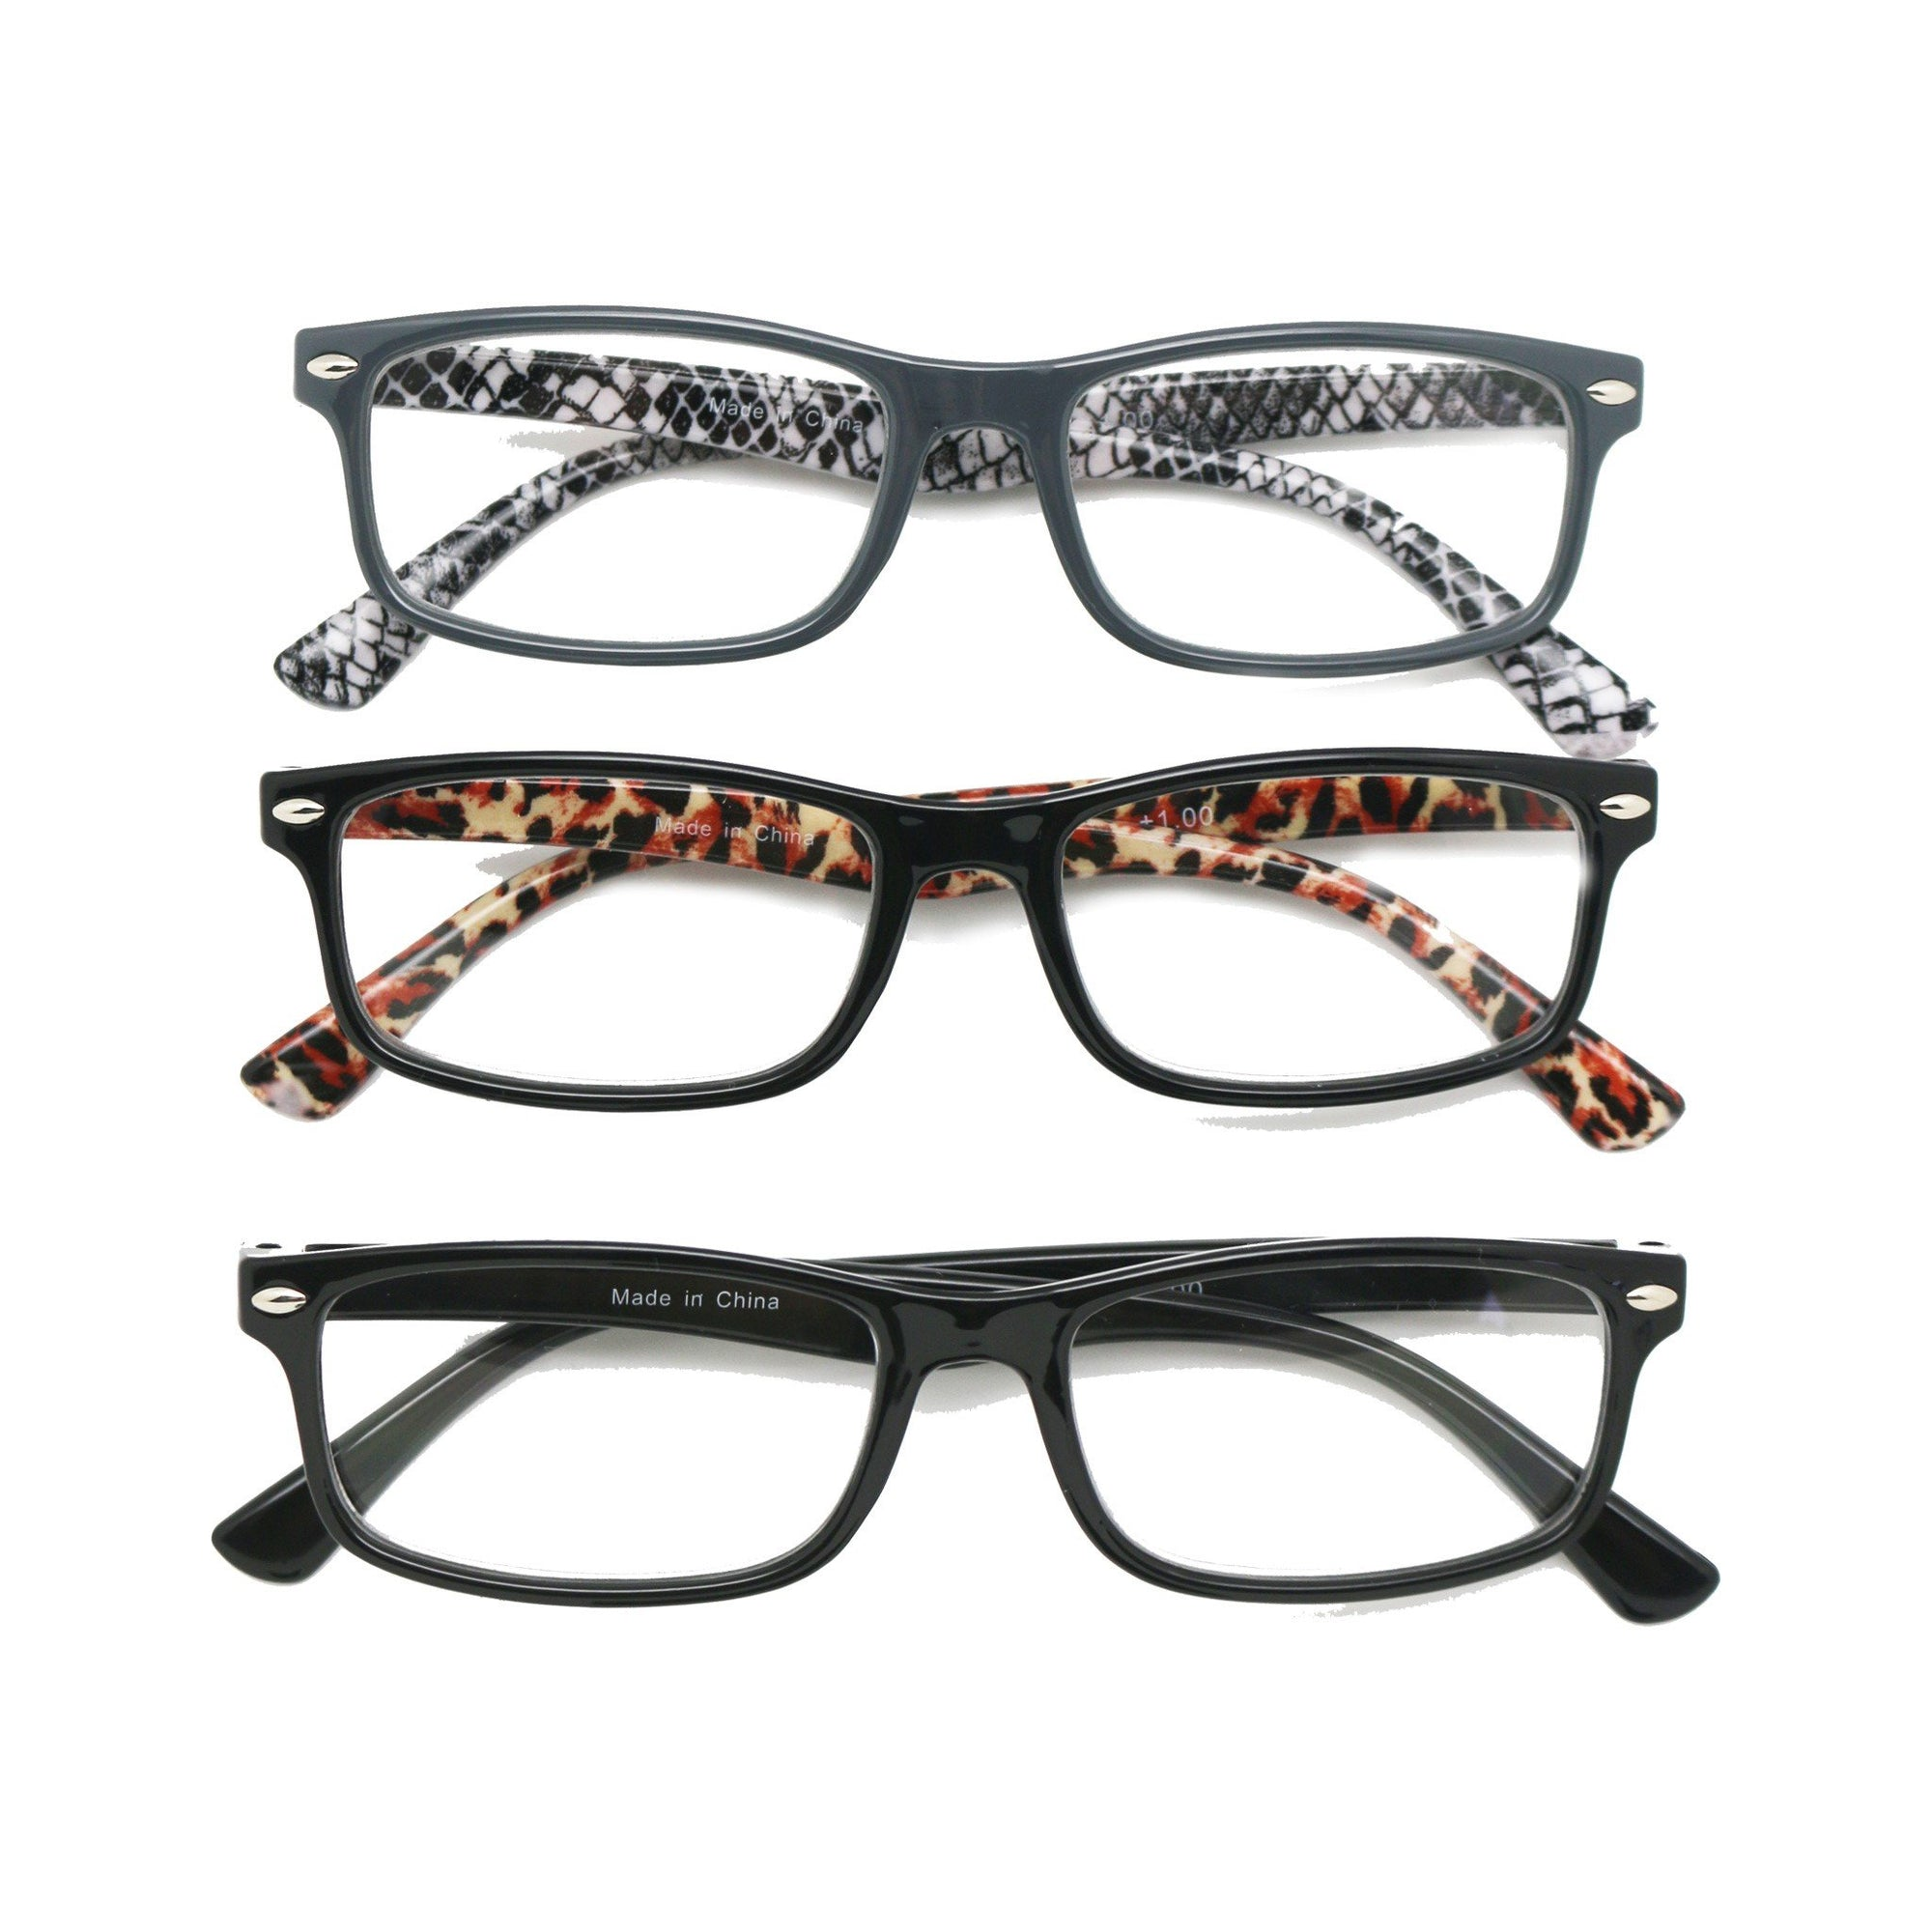 Casa Womens Reading Glasses +2.5 Magnification 3pk